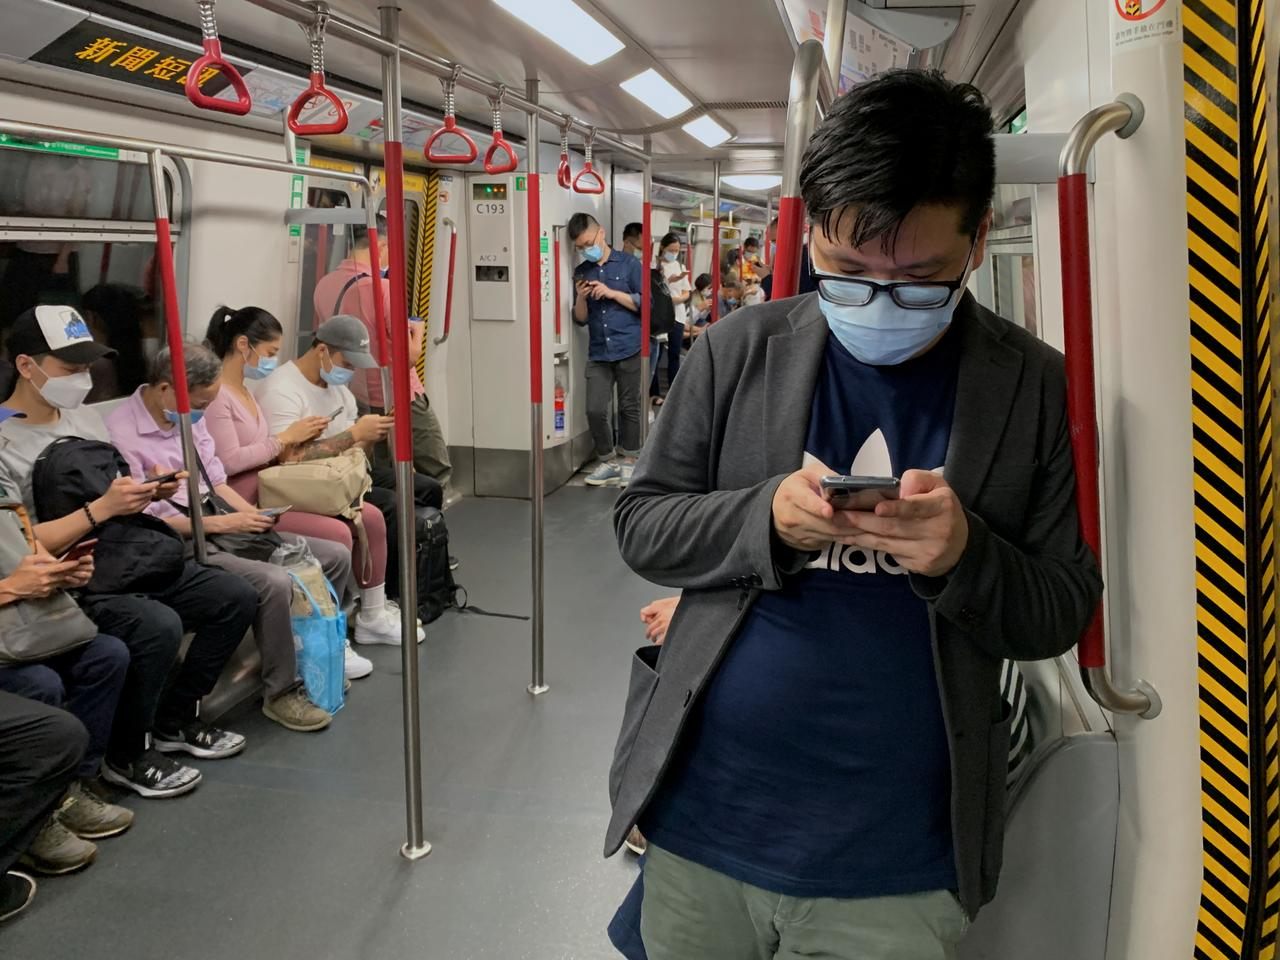 Hong Kong to Impose Most Strict Social Distancing Rules as Coronavirus Cases Surge